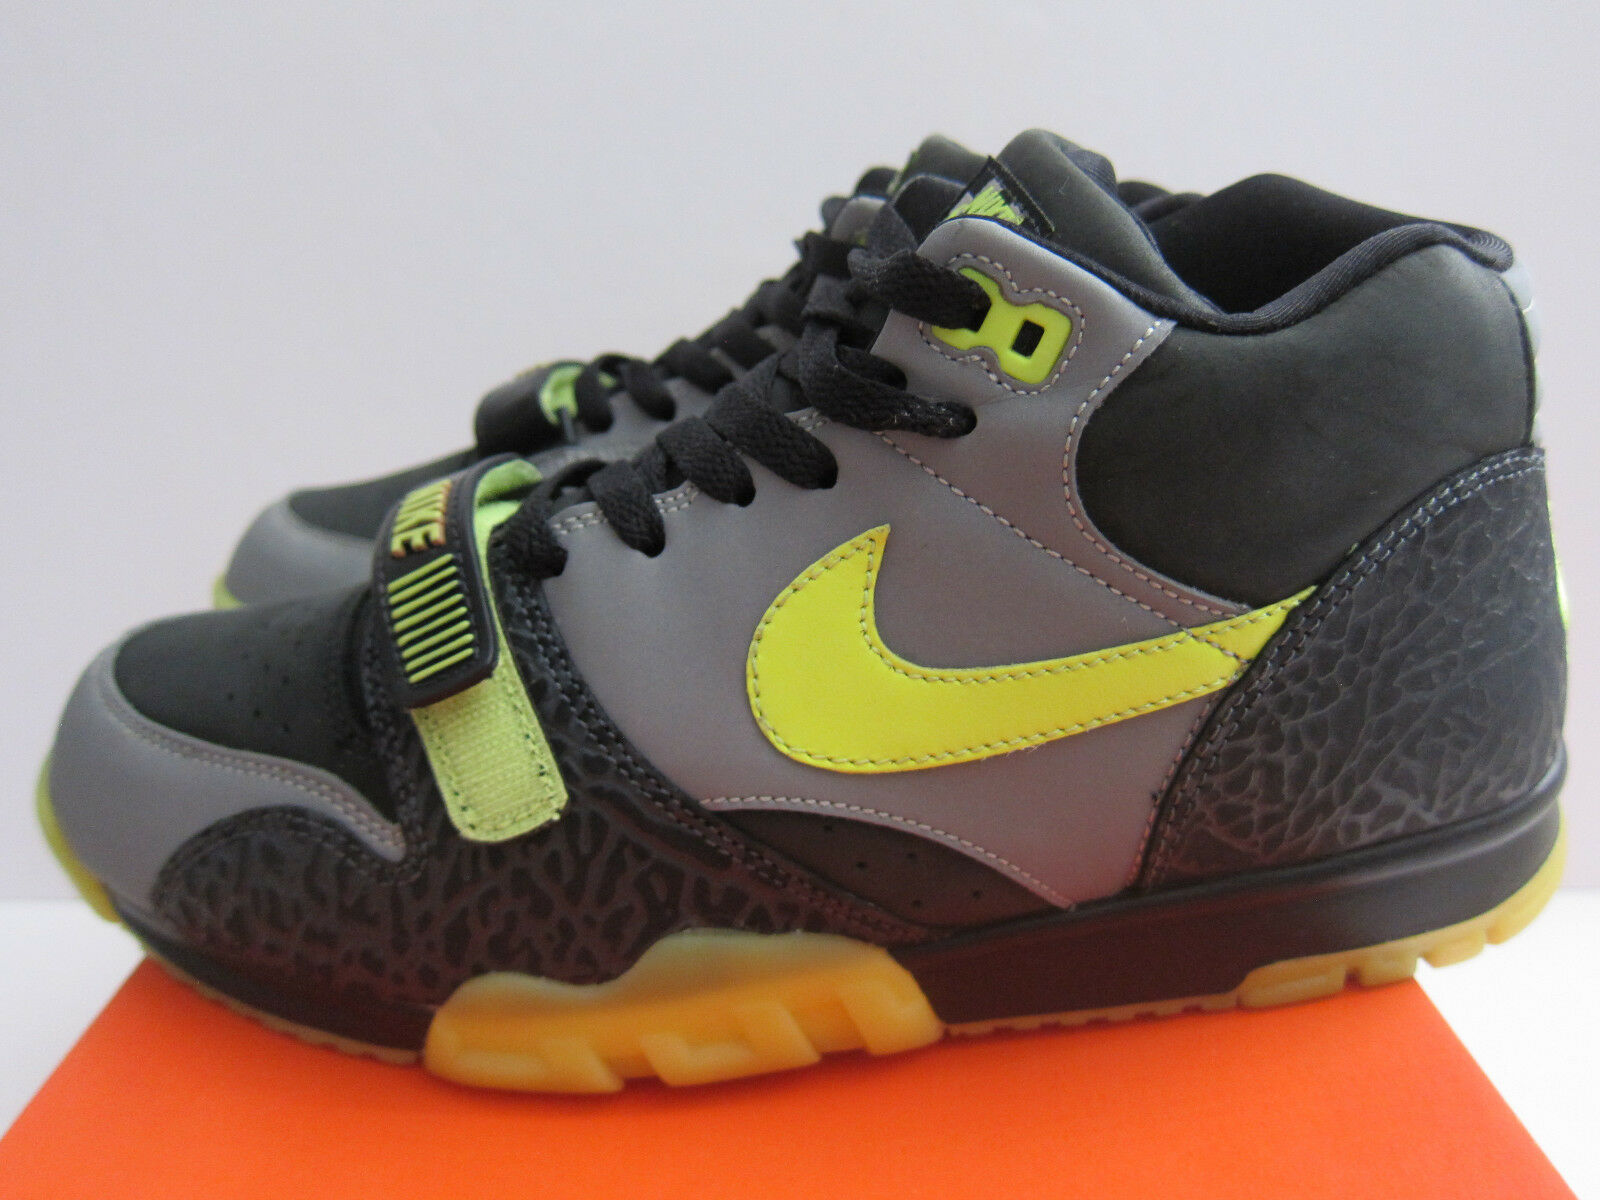 NIKE AIR TRAINER 1 PREMIUM 112 PACK DJ CLARK KENT Price reduction Cheap women's shoes women's shoes